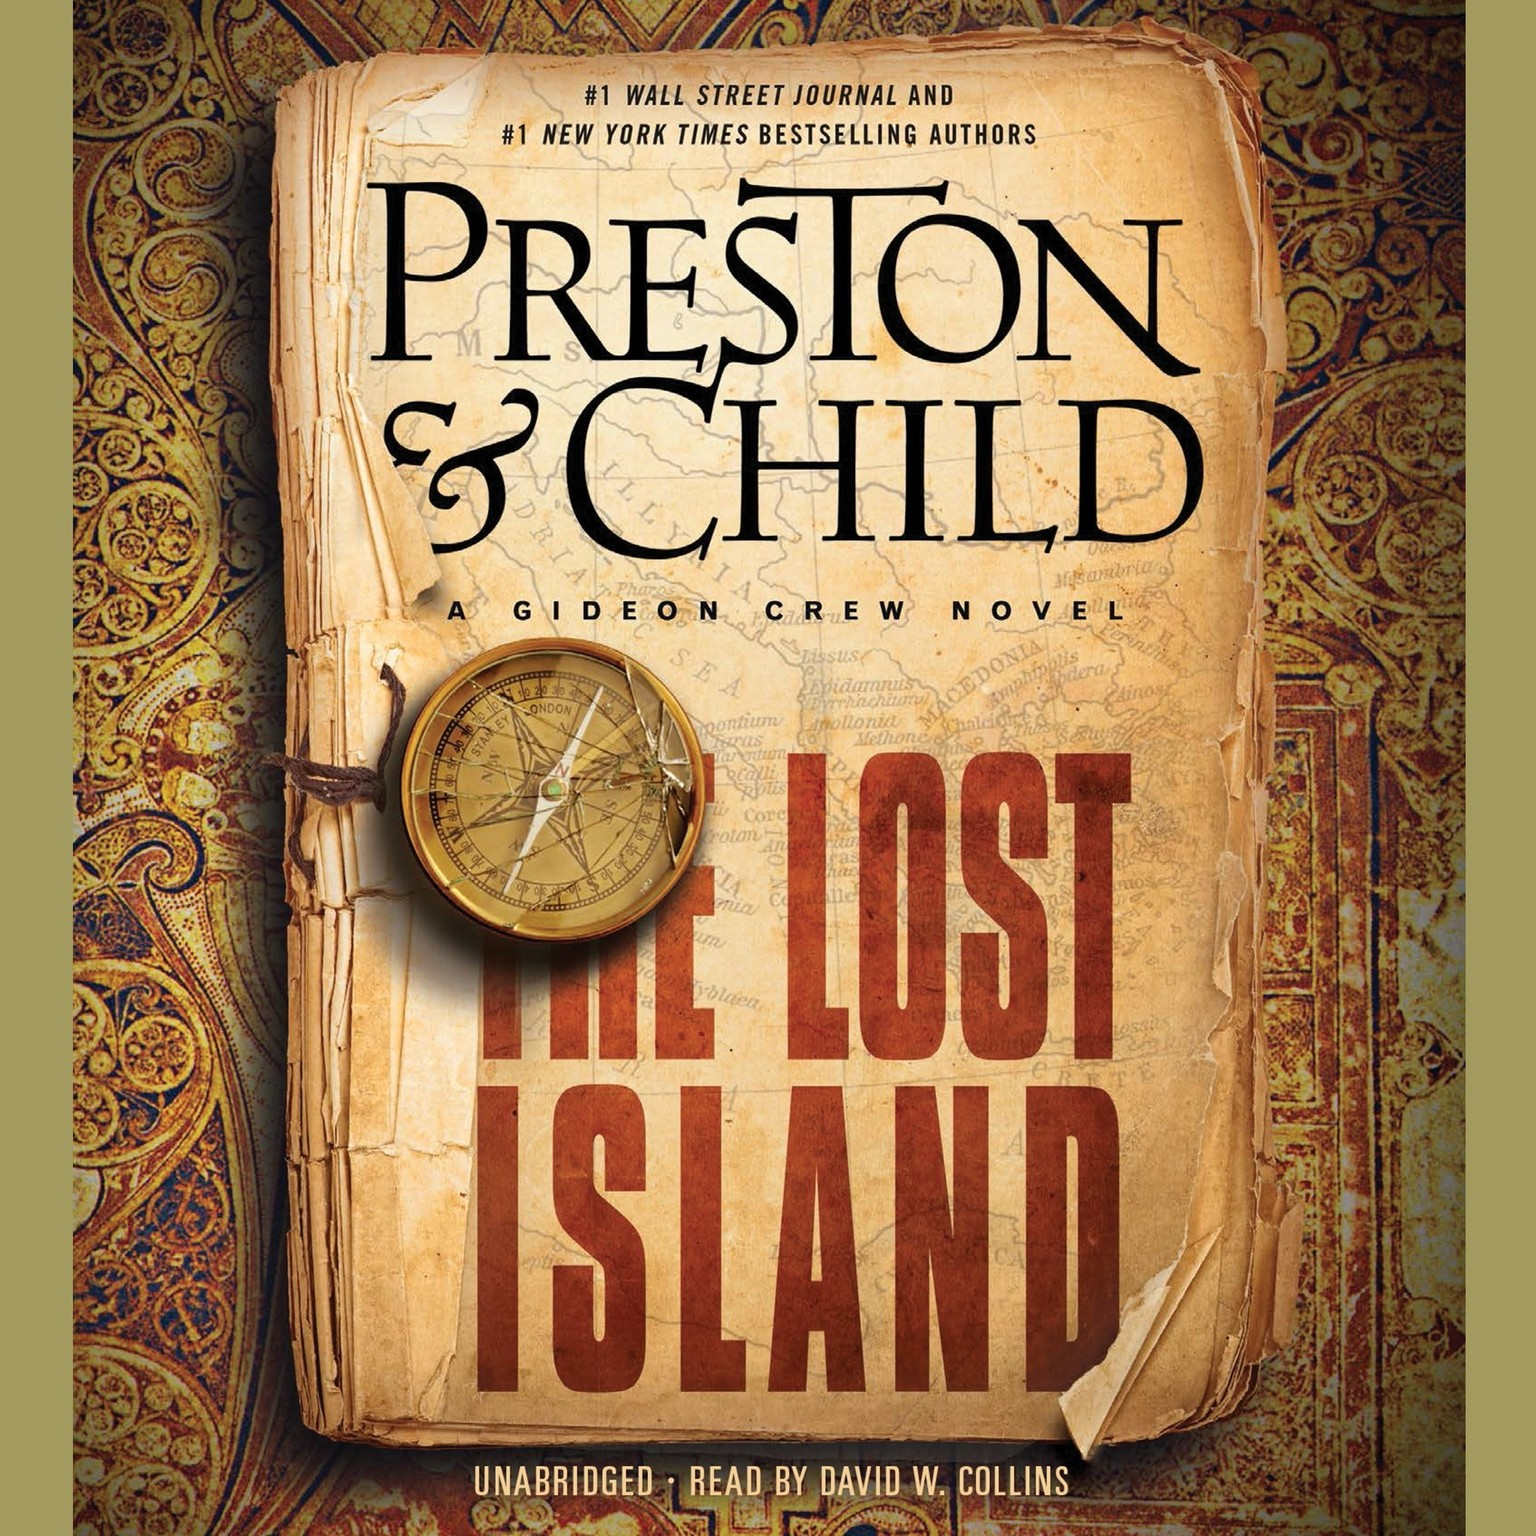 Printable The Lost Island: A Gideon Crew Novel Audiobook Cover Art